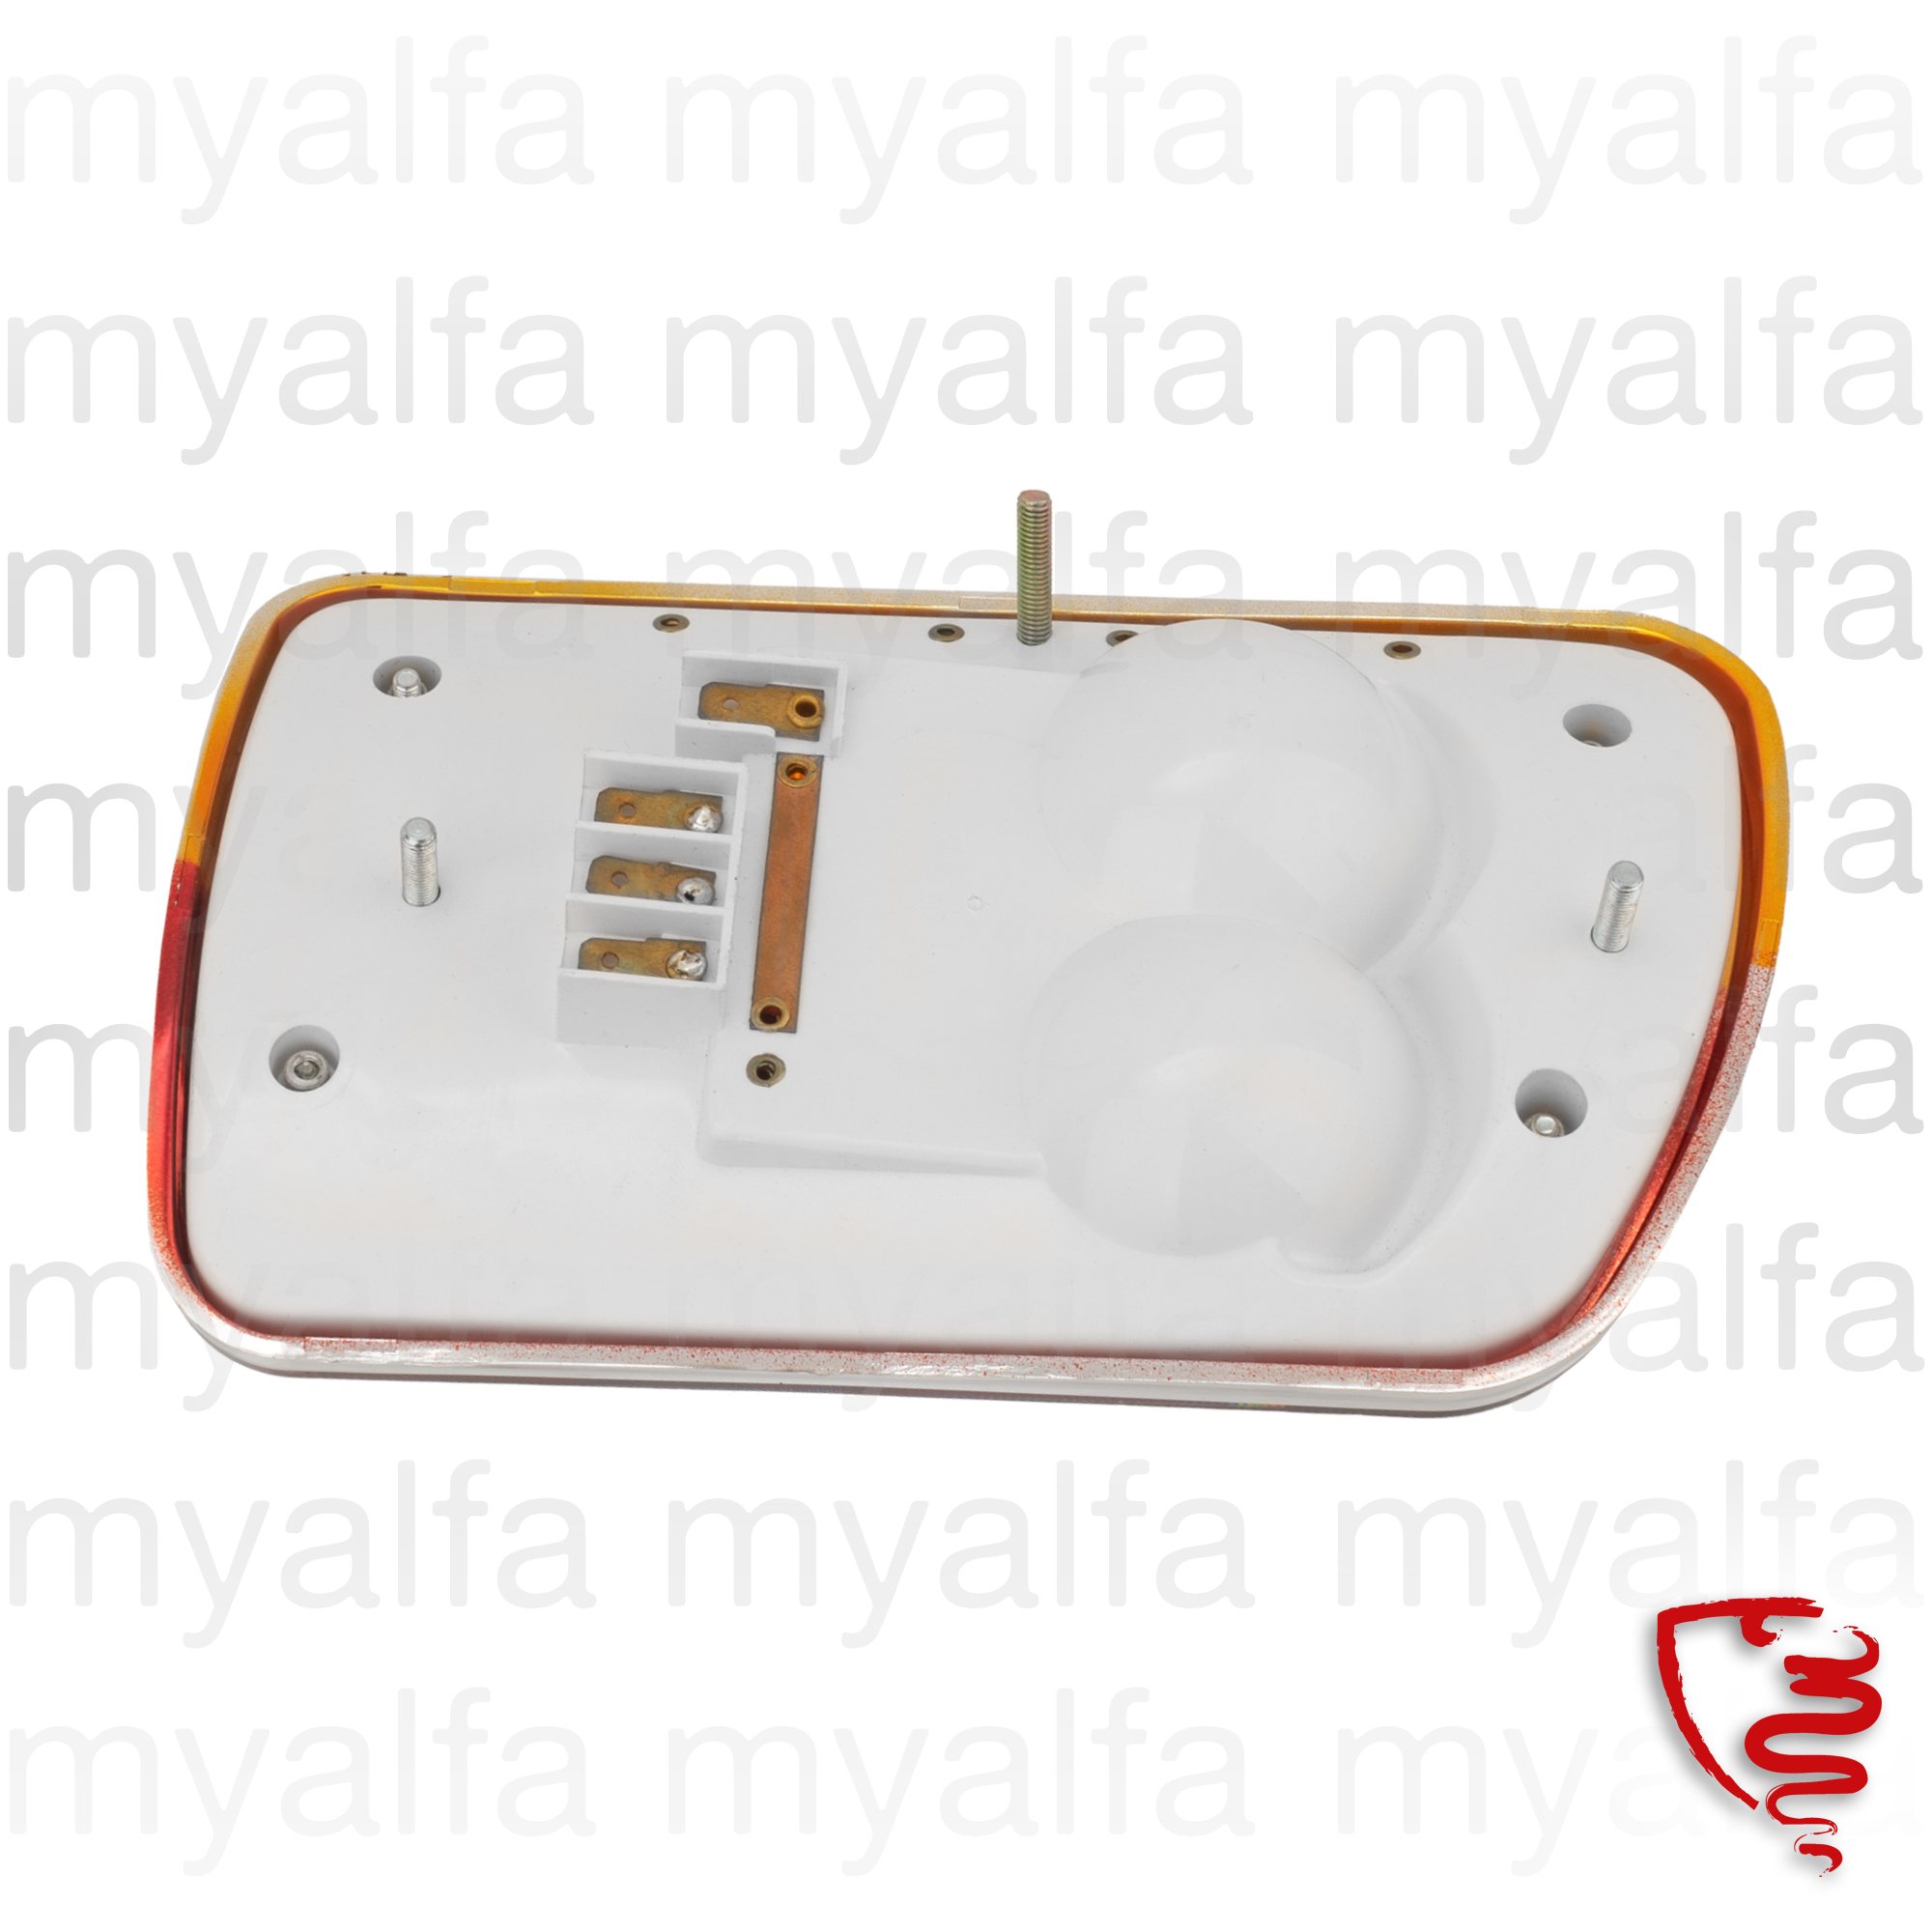 Full taillight behind esº 1300 - 1750 series2 - plastic base for 105/115, Coupe, Body parts, Lighting, Tail lights